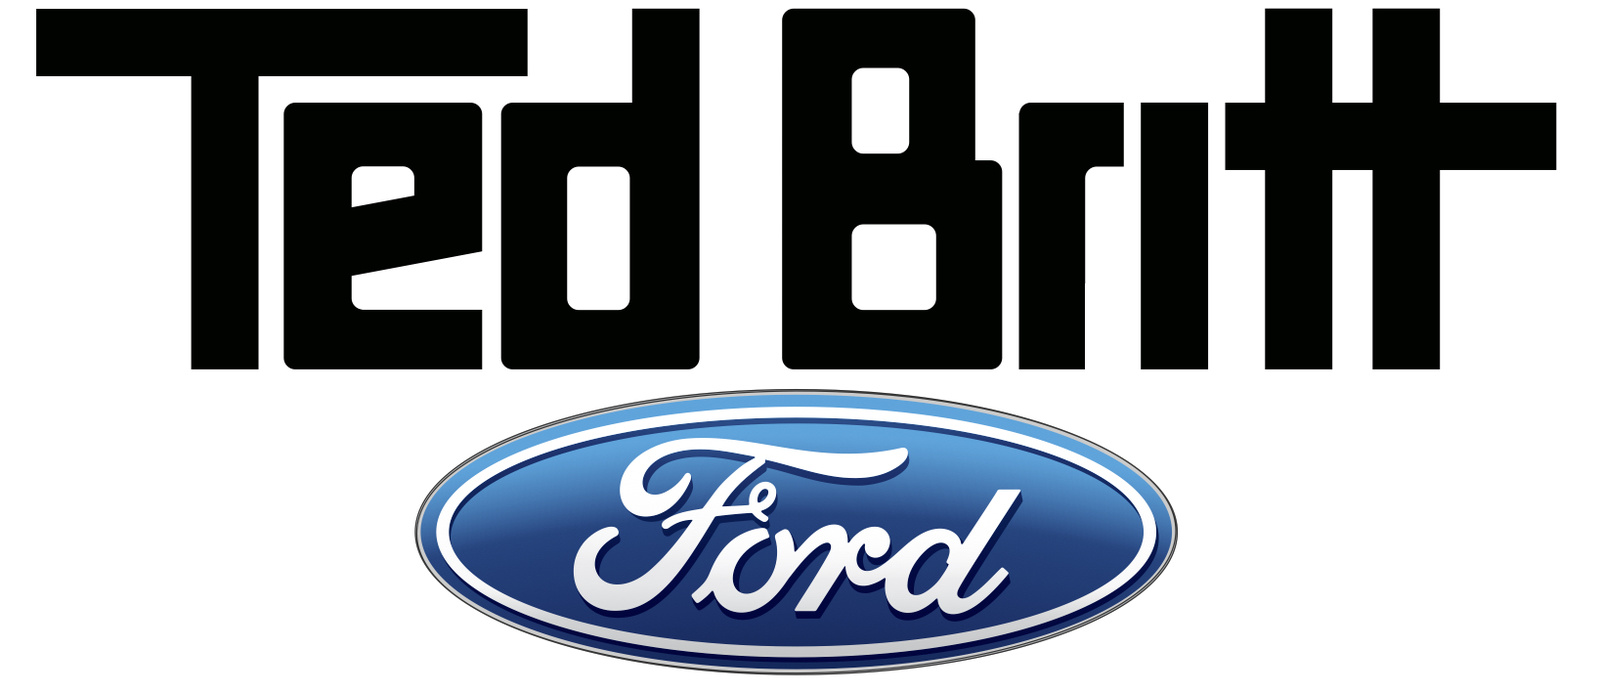 Nissan Dealers In Va >> Ted Britt Ford - Fairfax, VA: Read Consumer reviews, Browse Used and New Cars for Sale